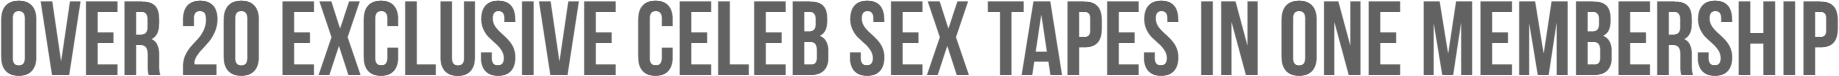 OVER 20 EXCLUSIVE CELEB SEX TAPES IN ONE MEMBERSHIP